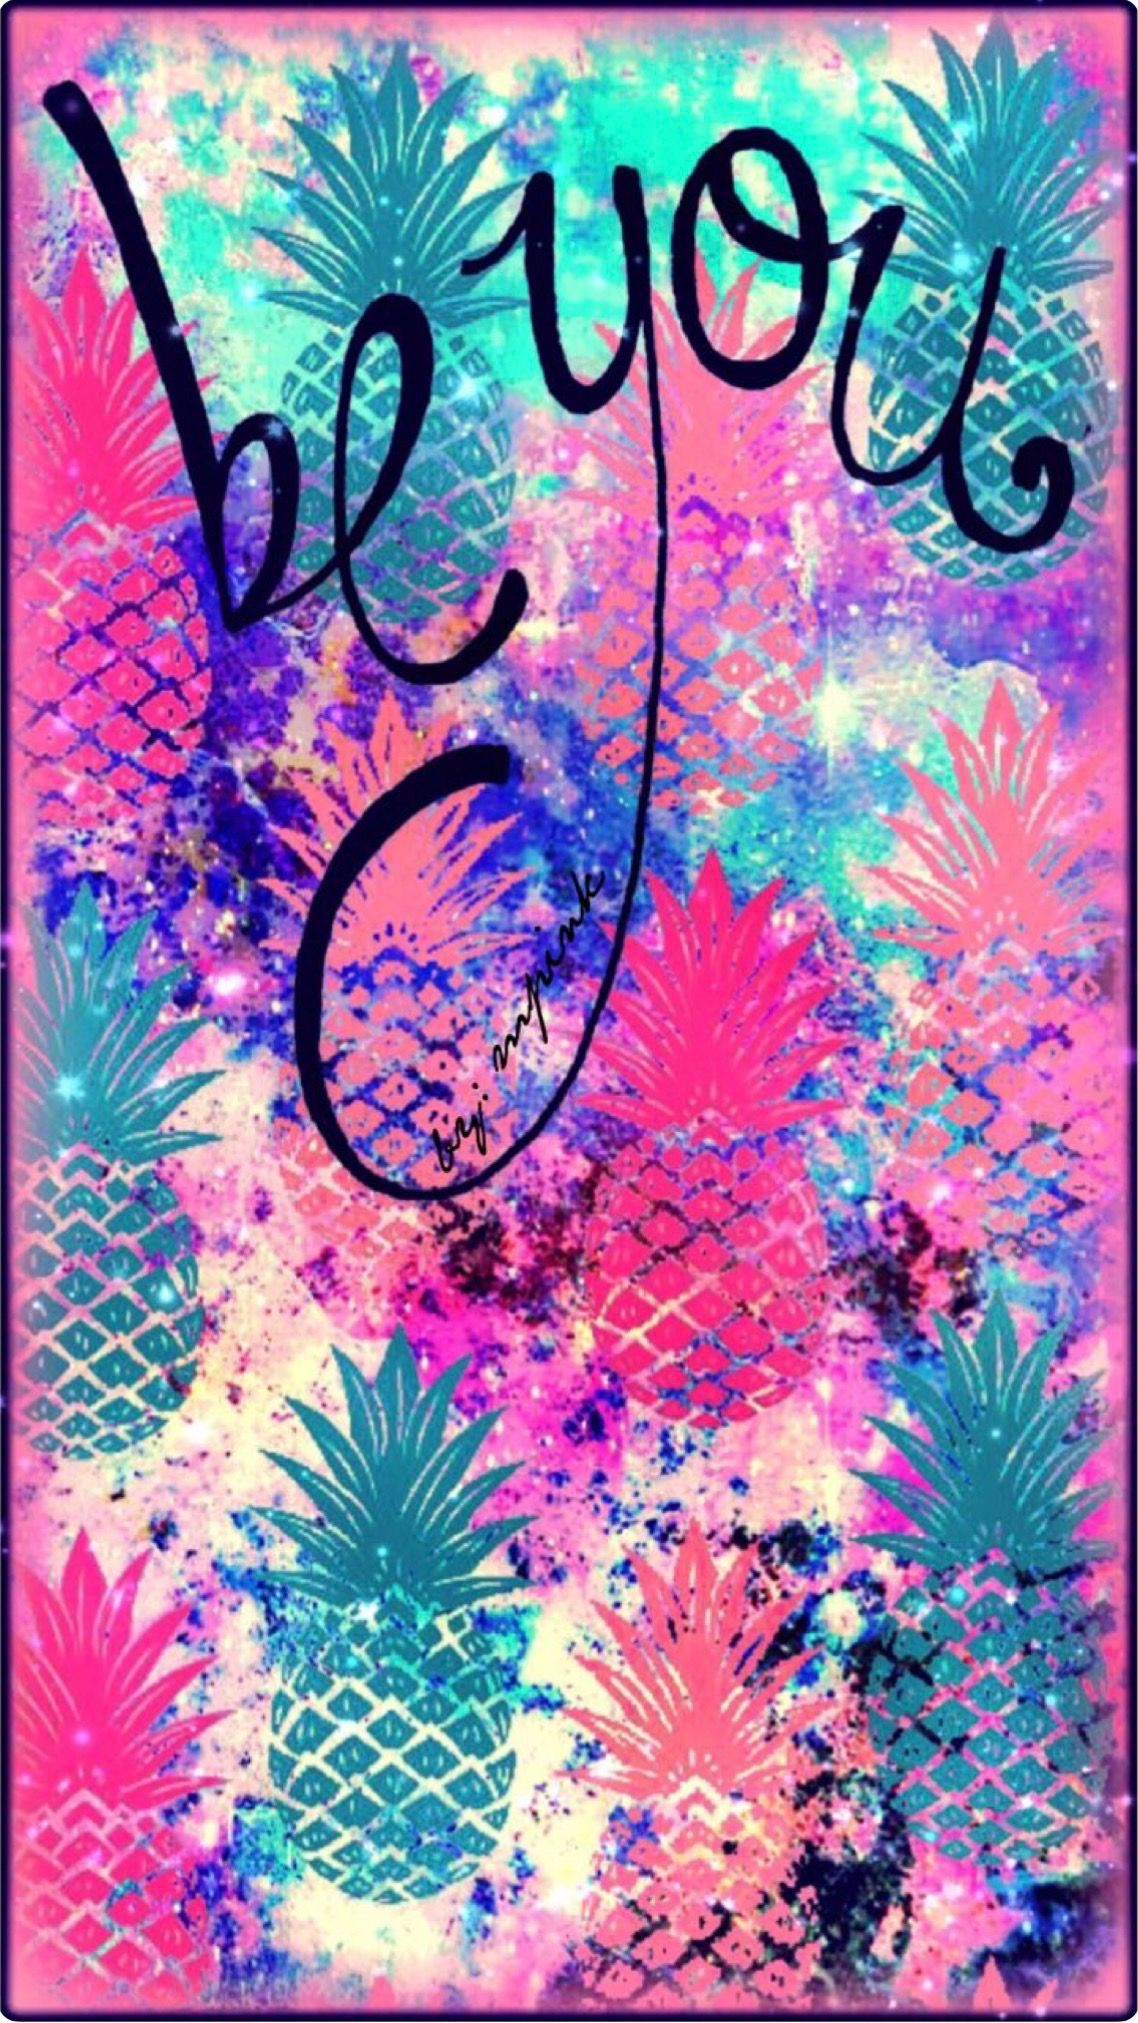 Be you tropical pink turquoise apricot pineapple wallpaper